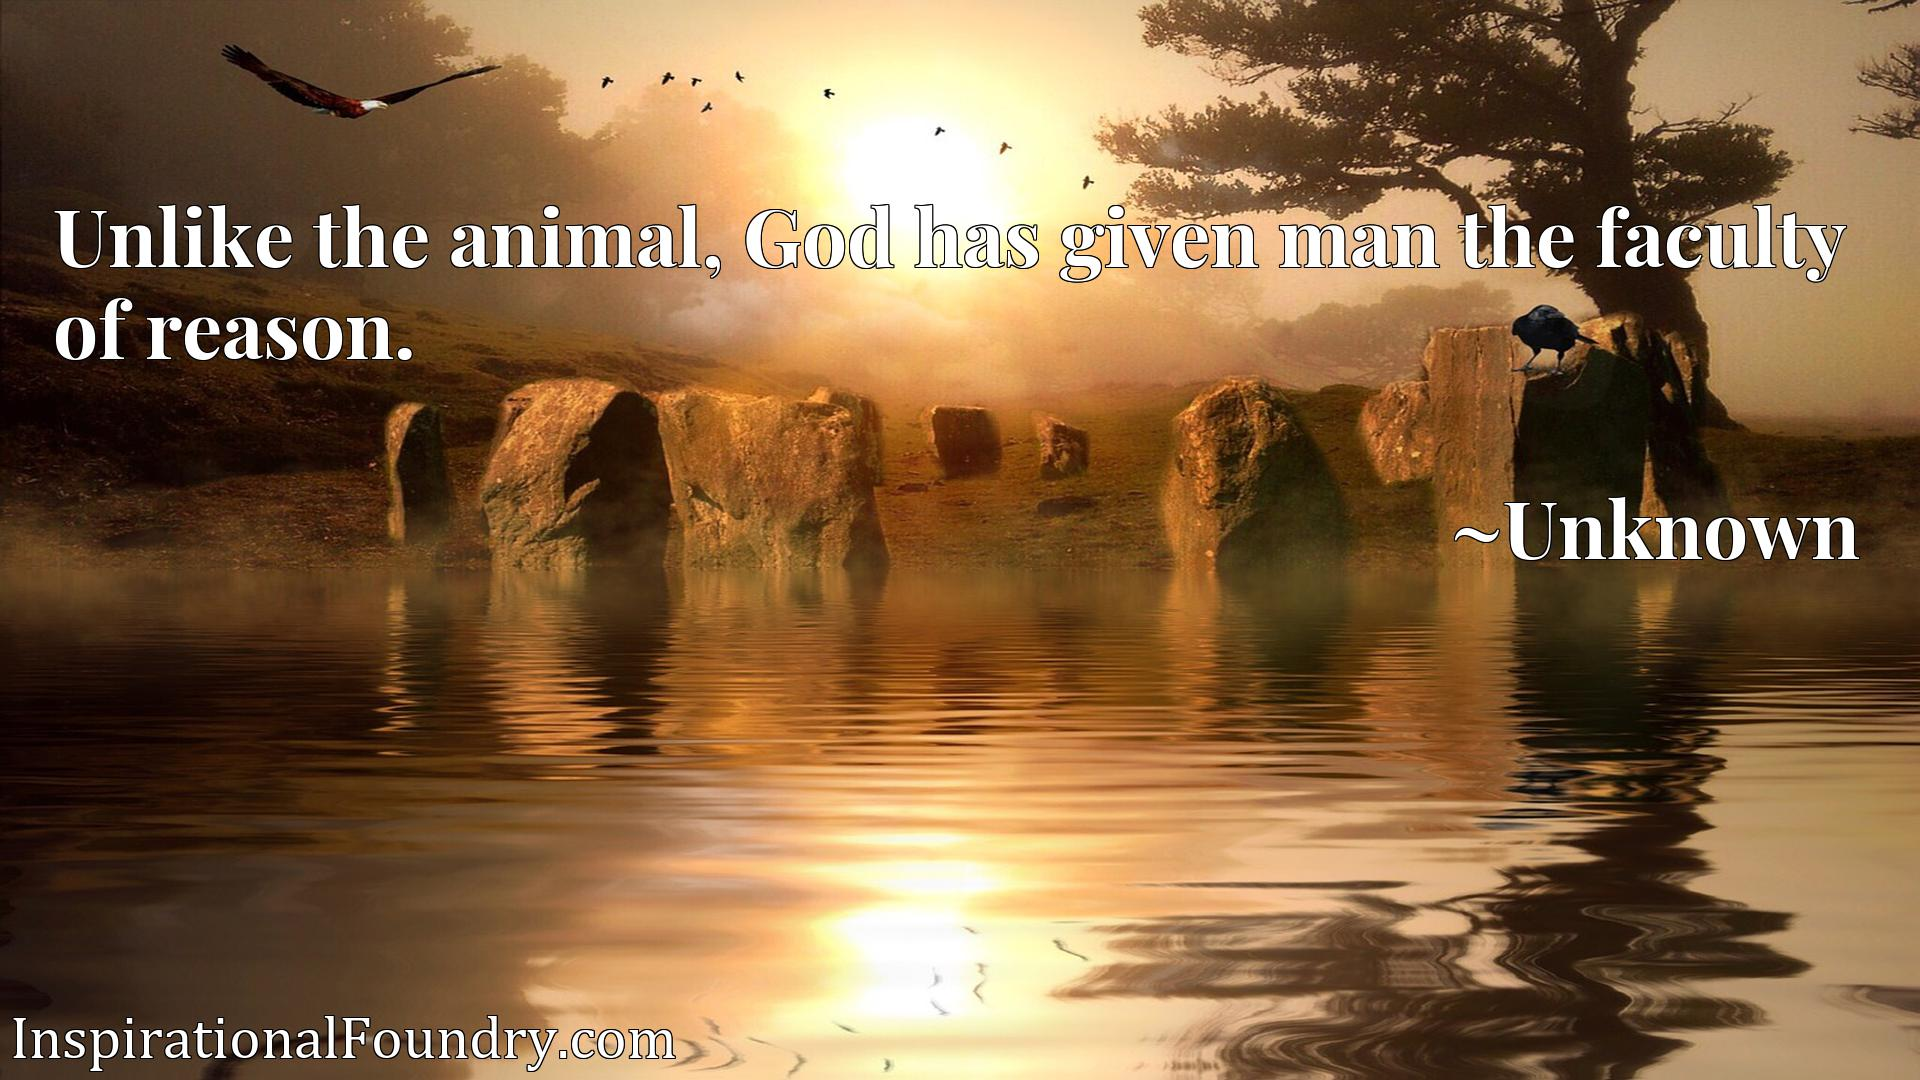 Quote Picture :Unlike the animal, God has given man the faculty of reason.